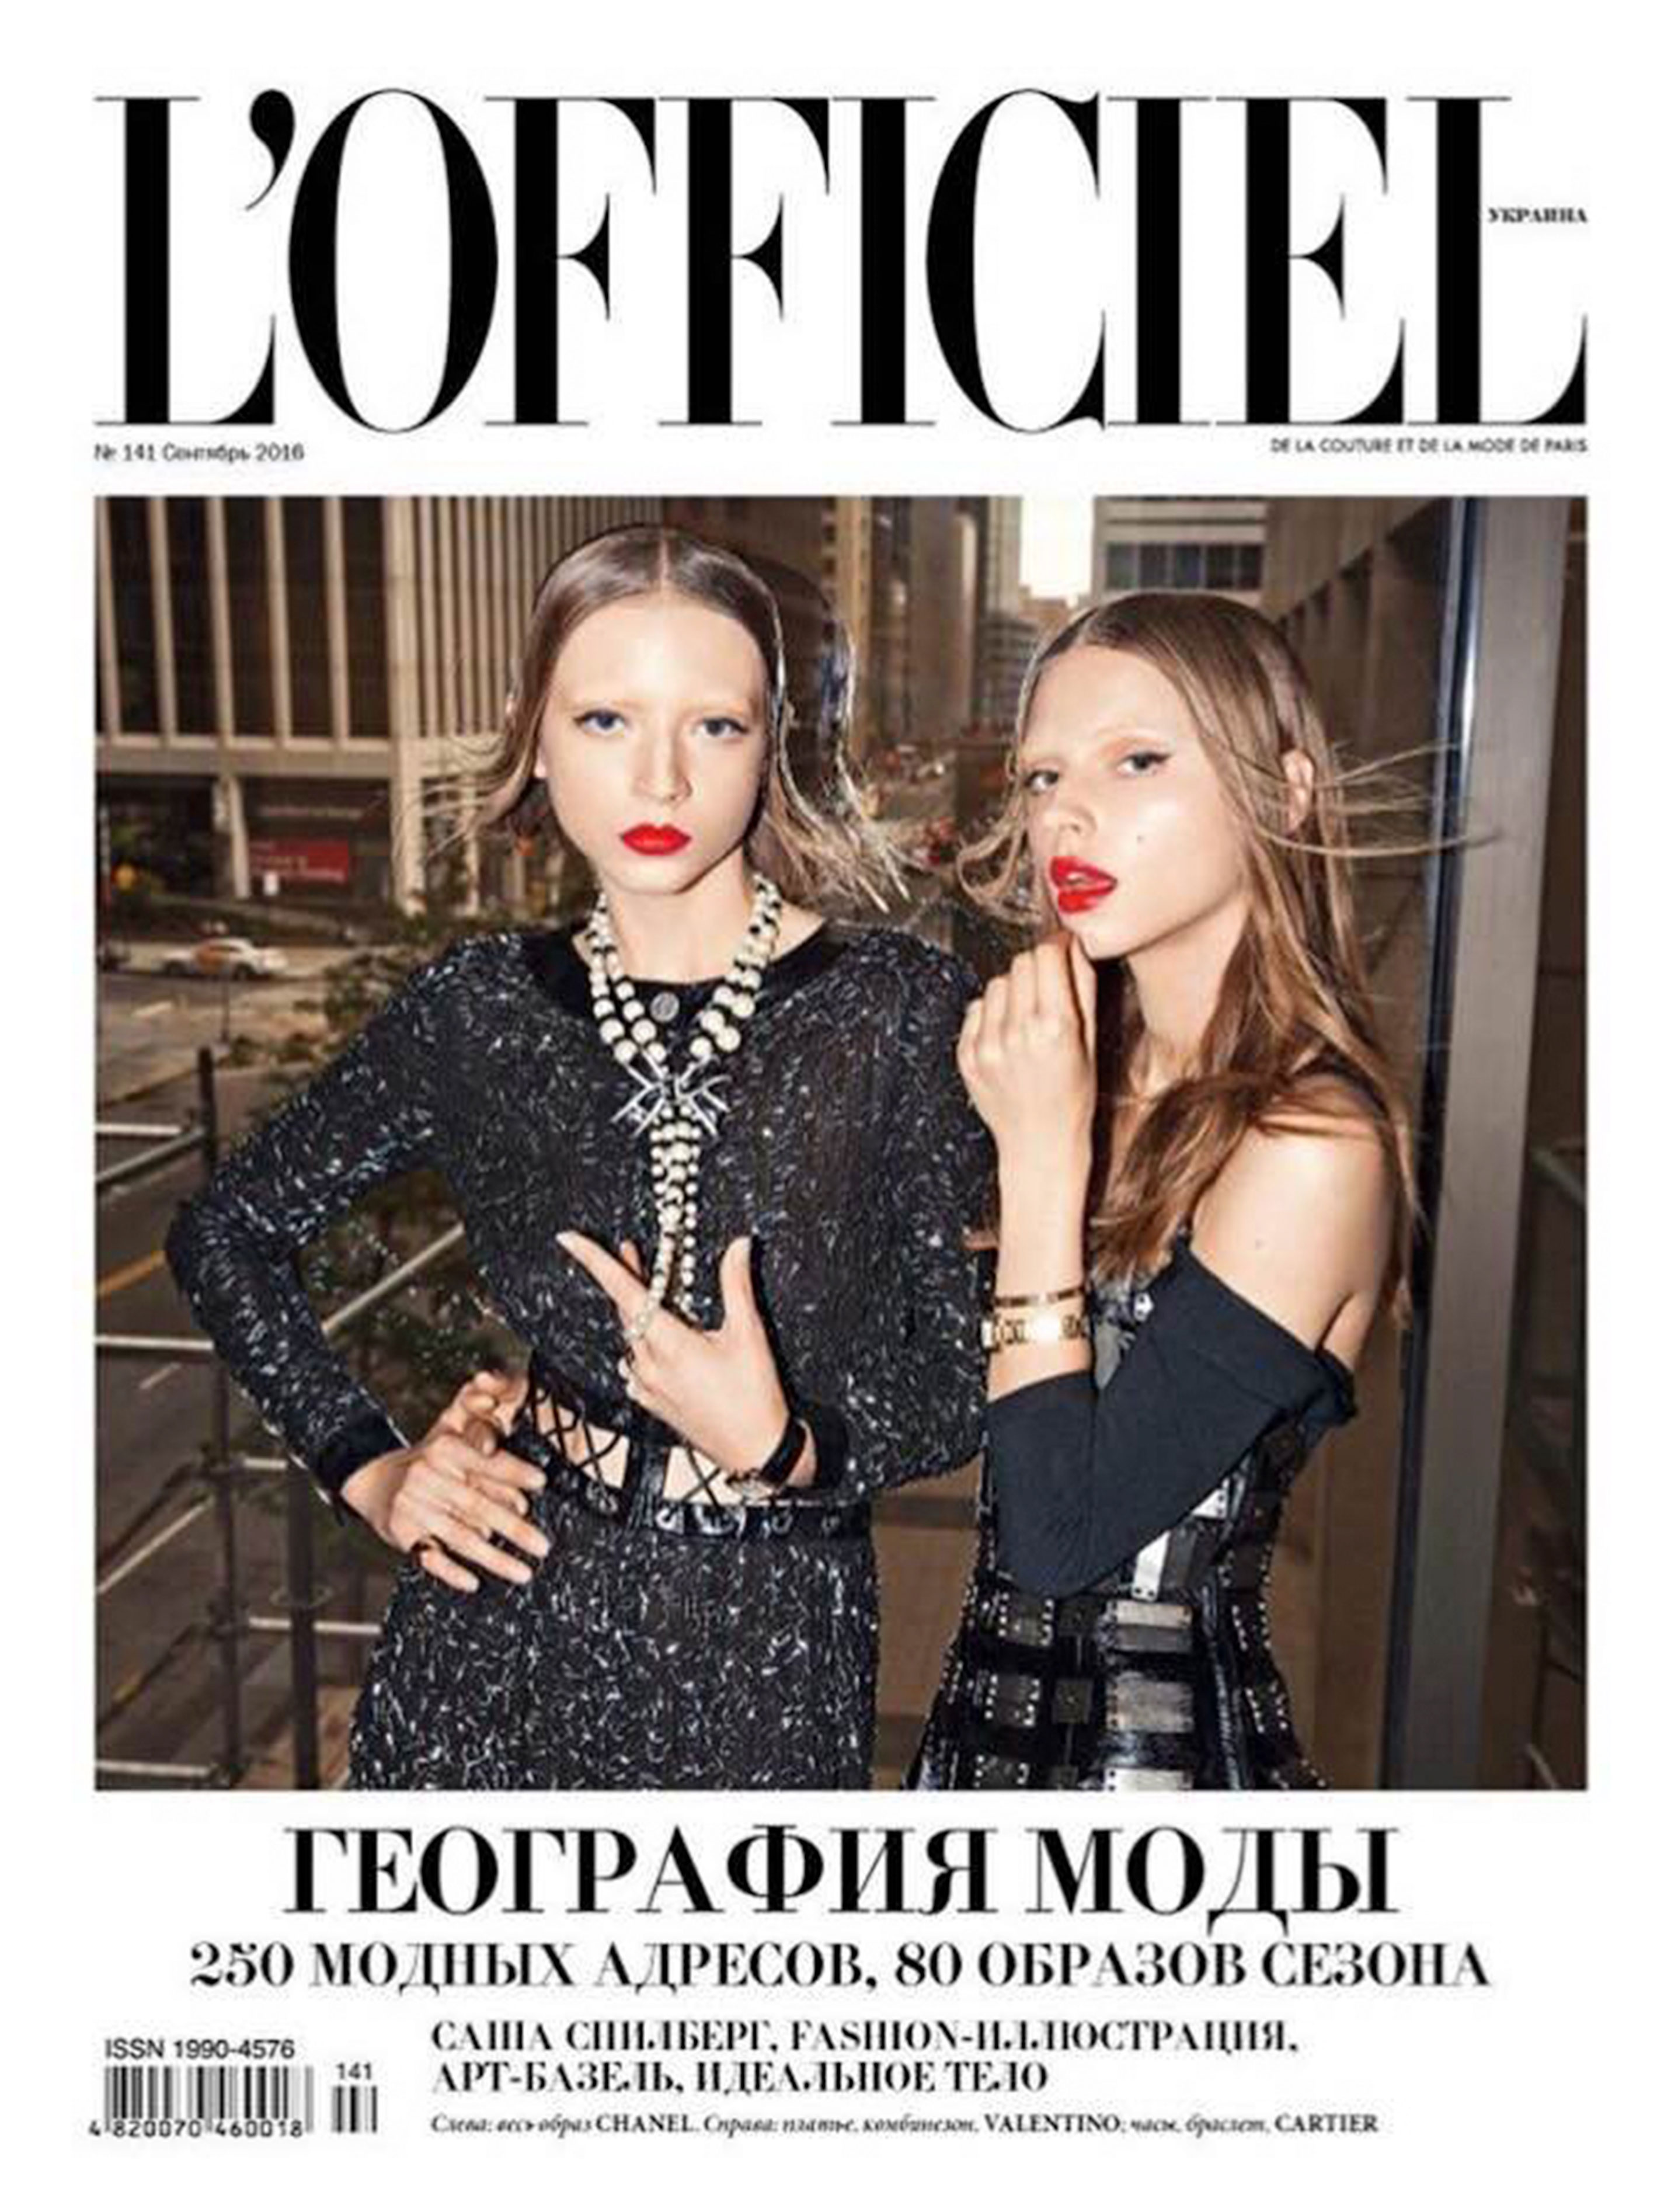 L'Officiel Russia, August 2016